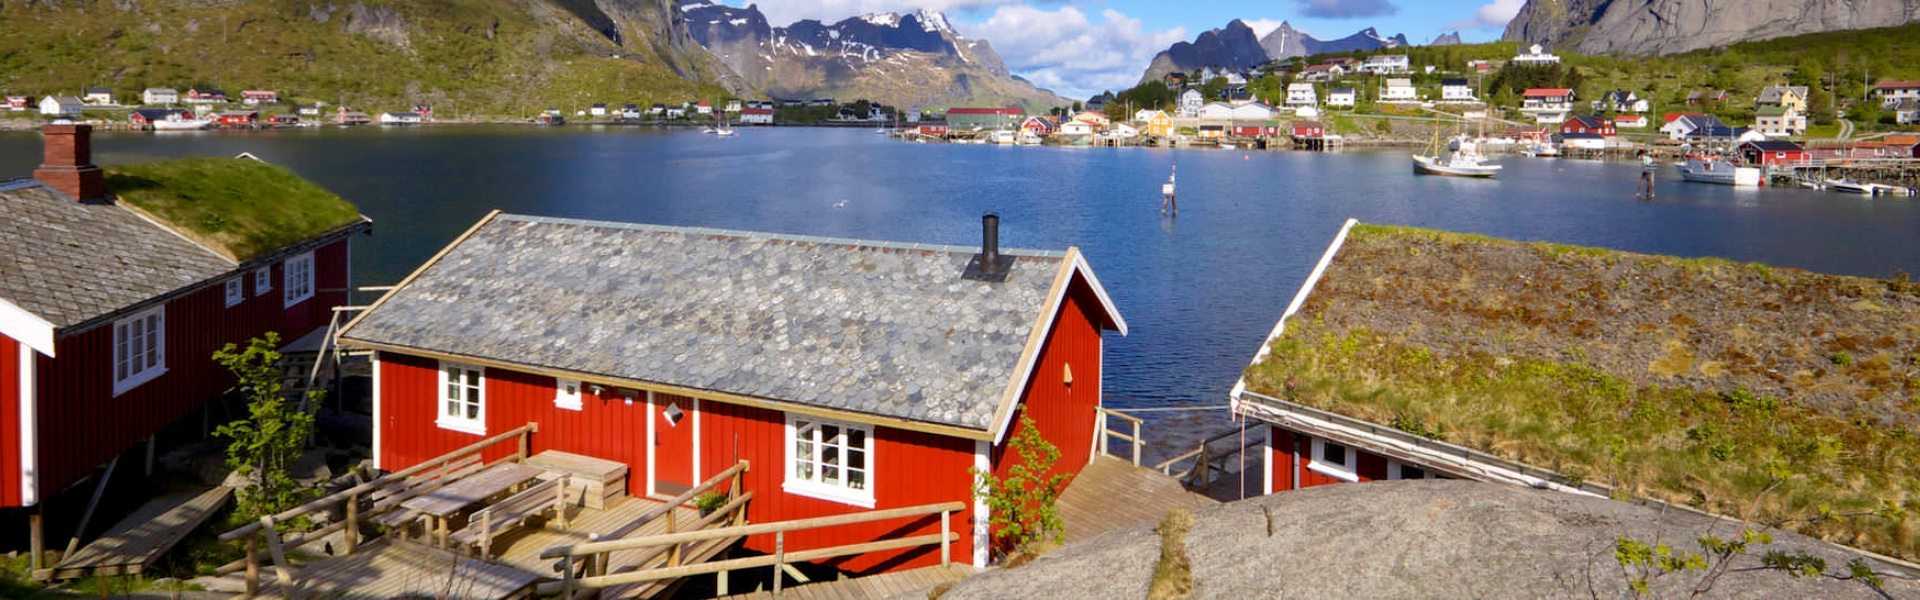 See the most famous Norwegian hallmarks, including iconic red wooden houses on your Scandinavia tour